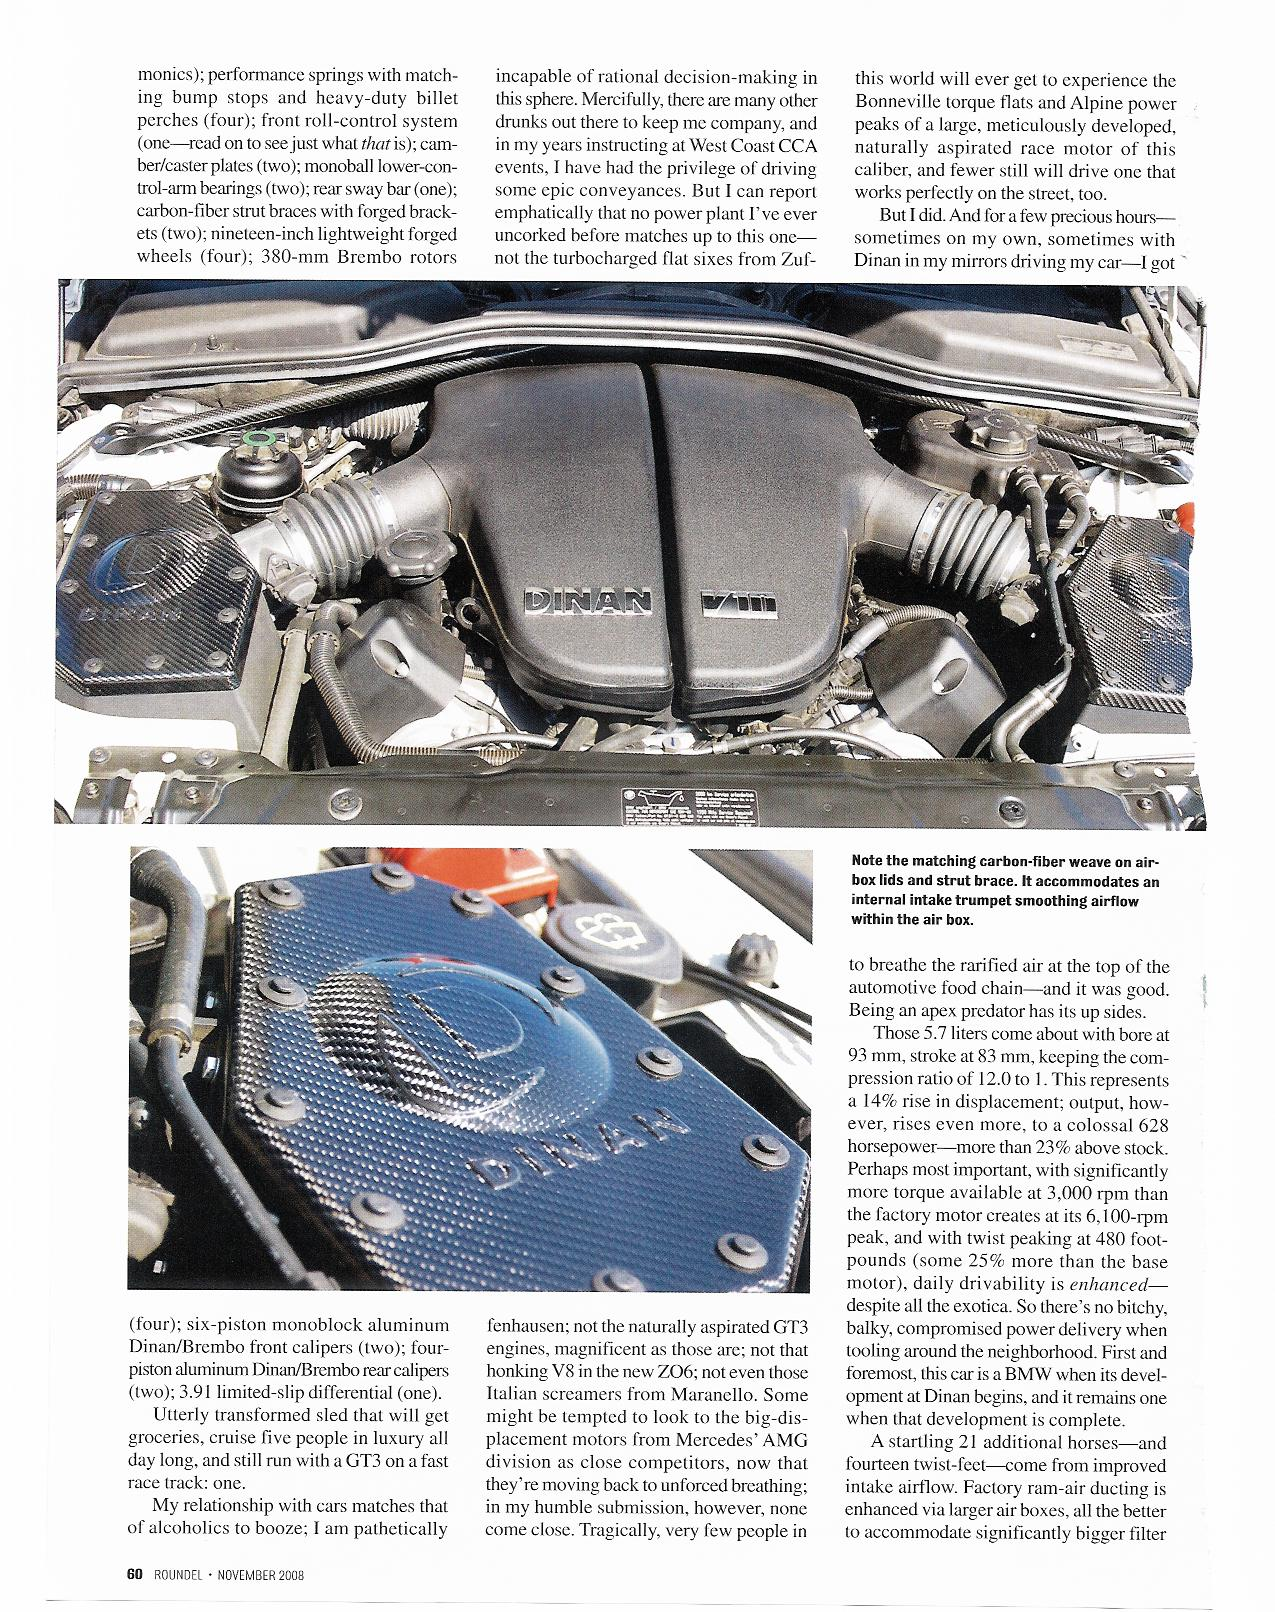 Stock E60 M5 owner evaluates Dinan S3 (Roundel Article)-roundel-article-dinan-e60-m5-s3-003.jpg